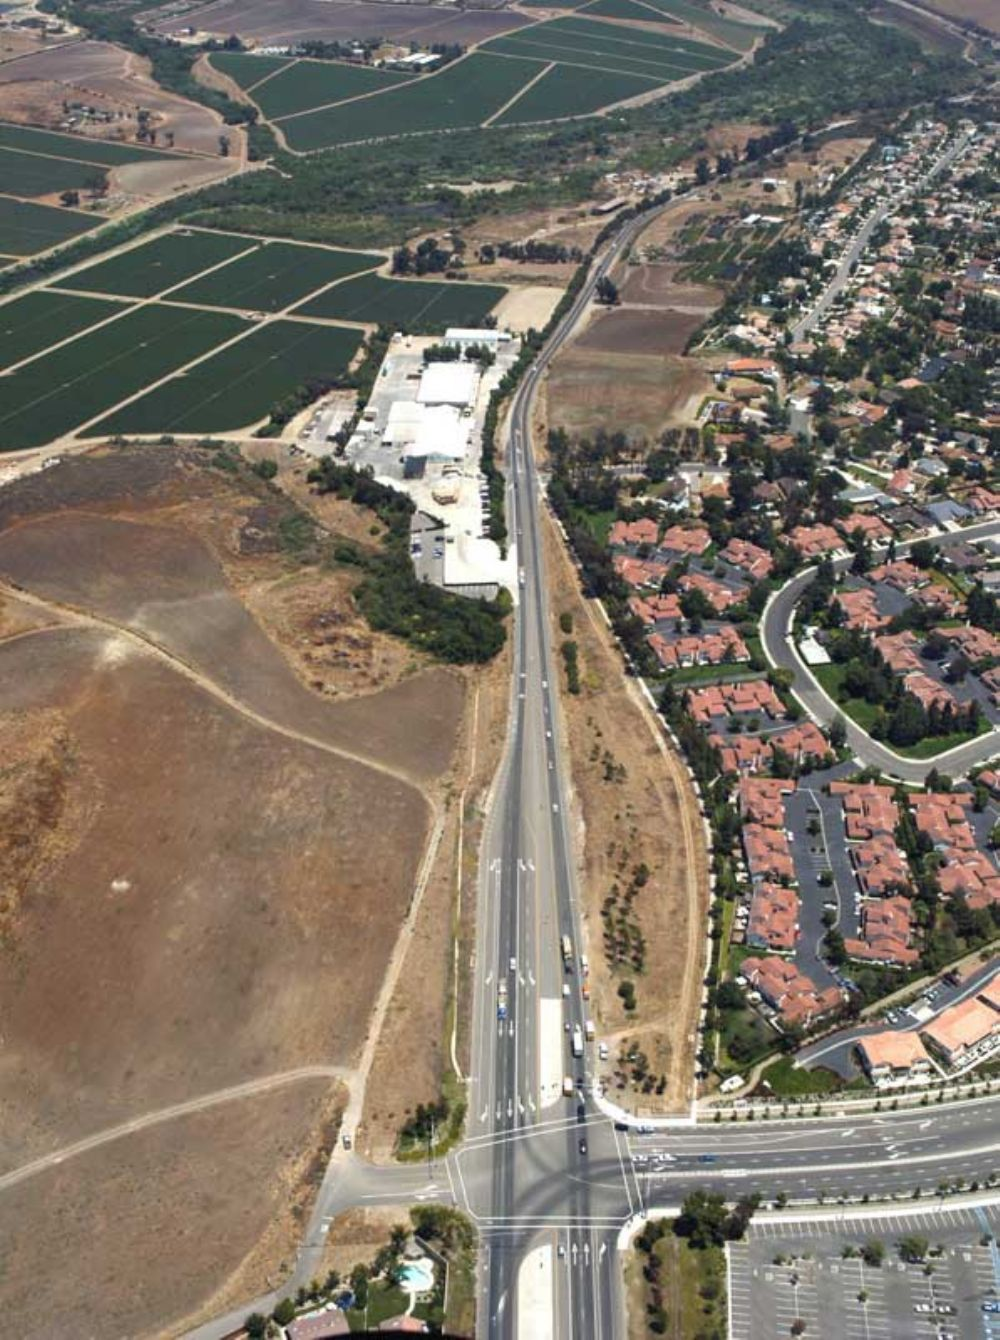 The estimated $240 million project will develop a four-lane conventional highway from South Mission Road to just east of Interstate 15. The SR-76/I-15 interchange also will be widened.